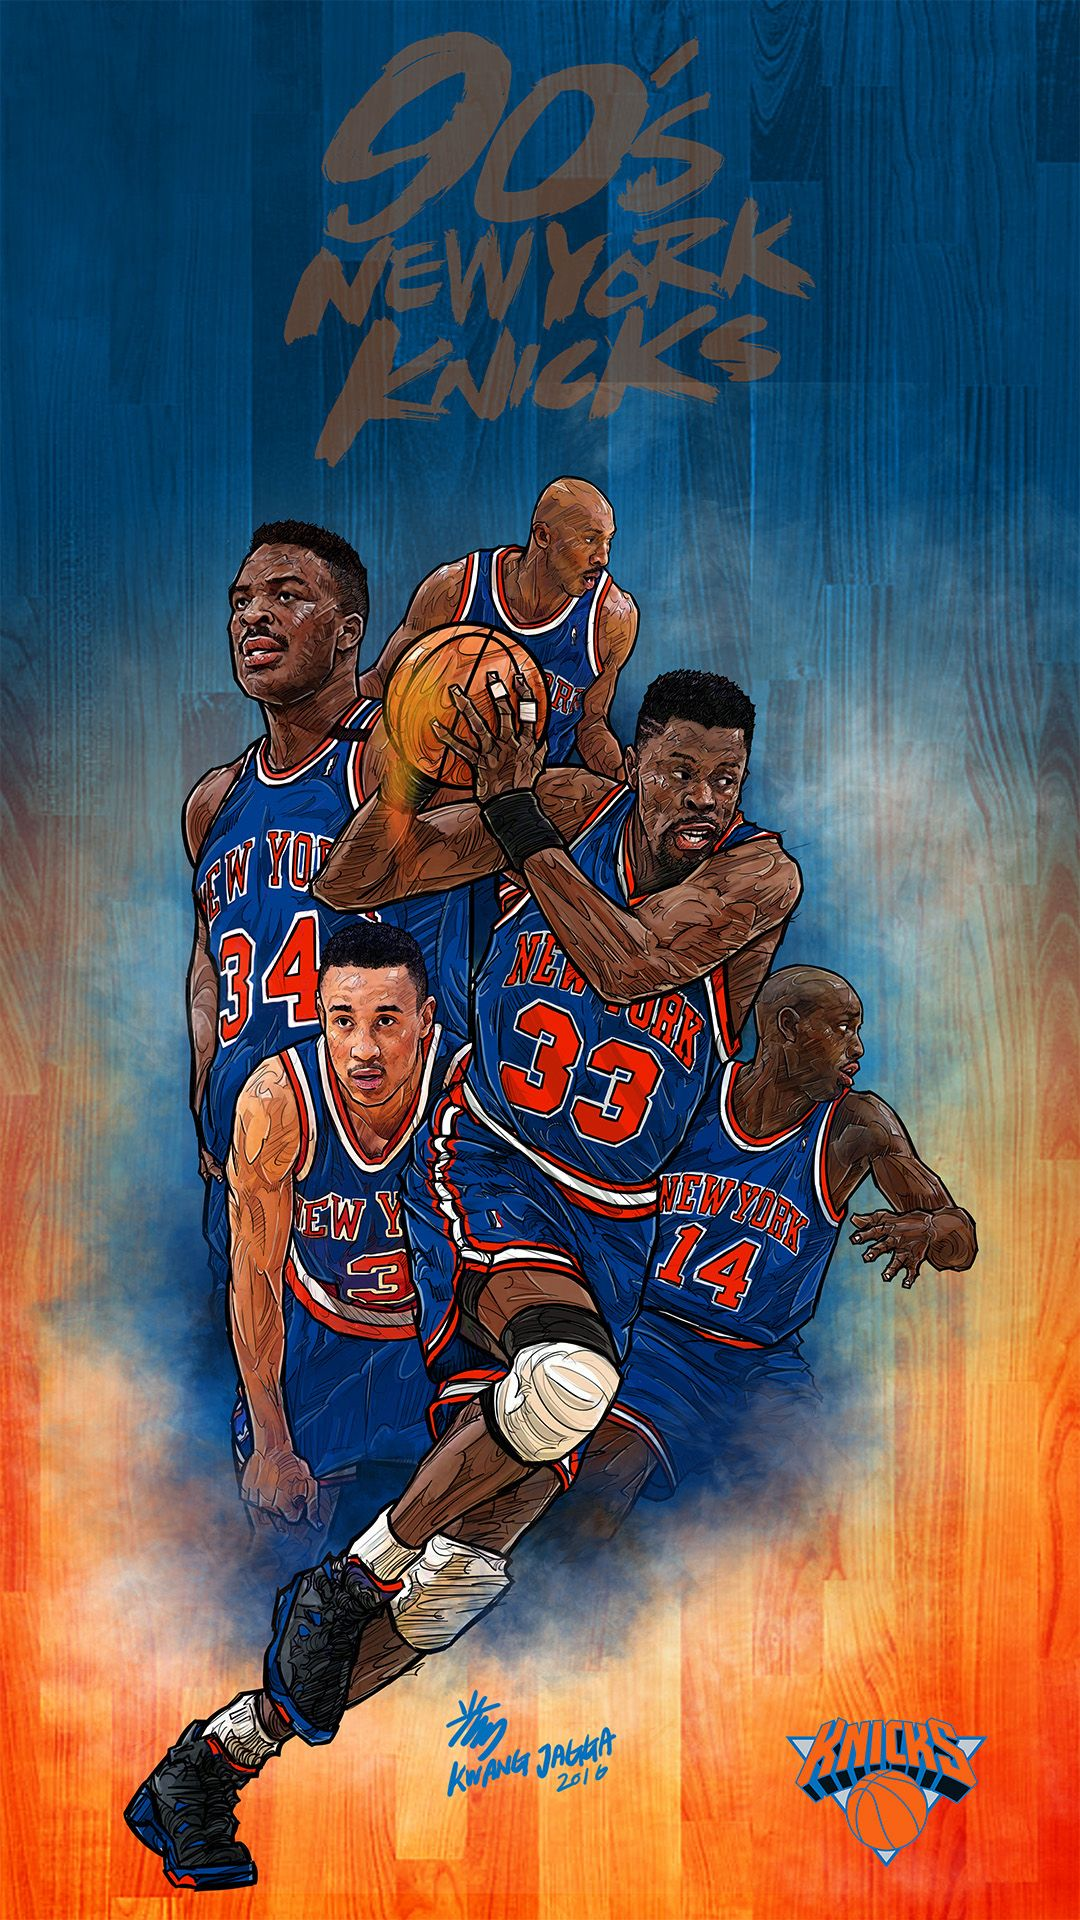 Nba Wallpapers New York Knicks Wallpaper Phone 96290 Hd